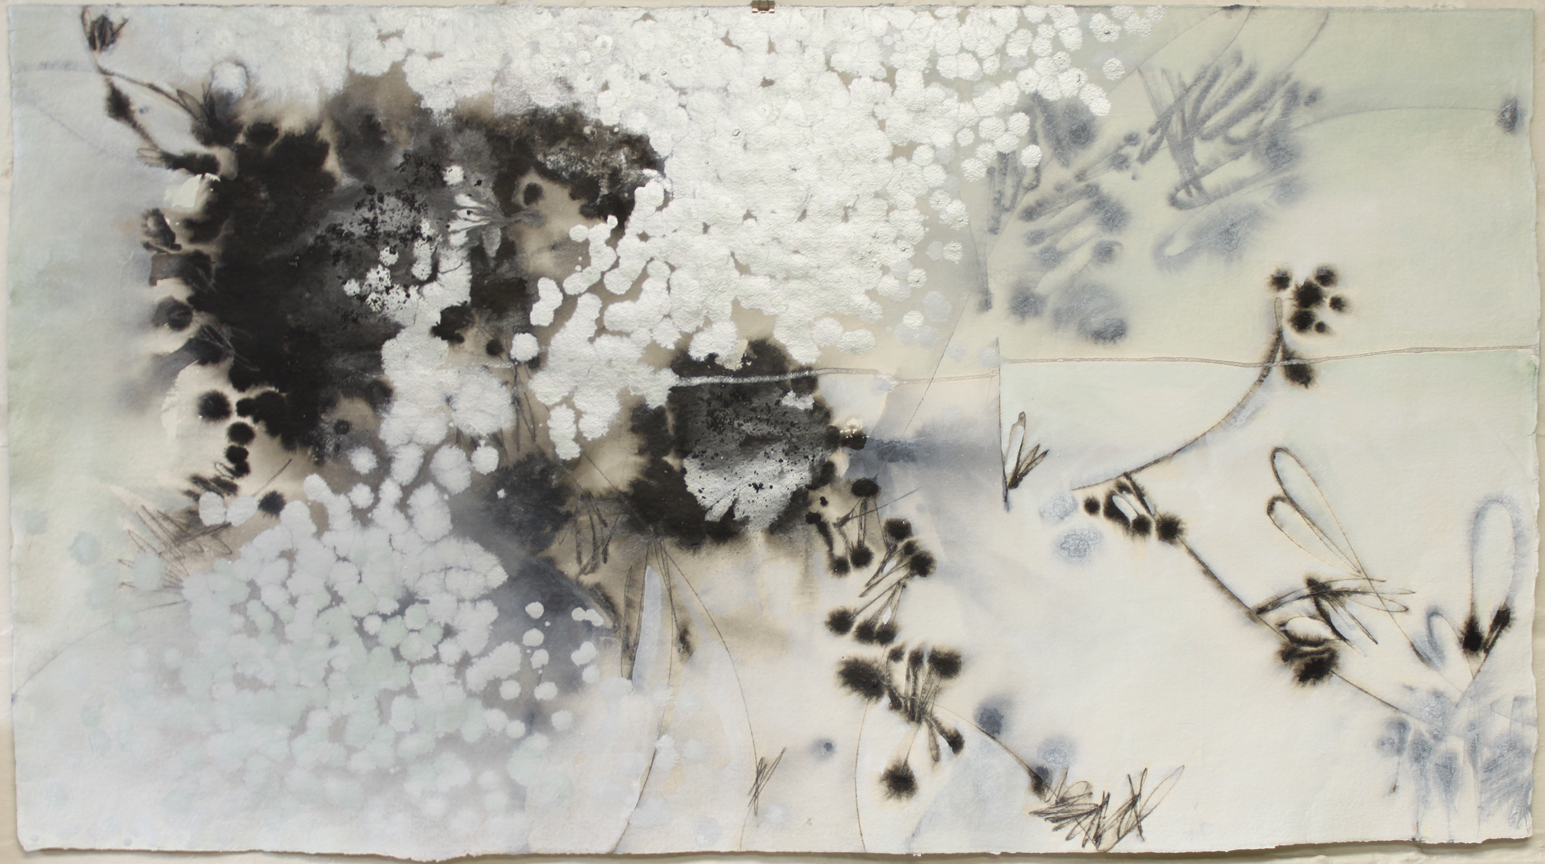 """Soft to Tell XXVII :: 22""""x40"""" :: ink, acrylic, and powdered graphite on handmade cotton rag watercolor paper :: 2018"""